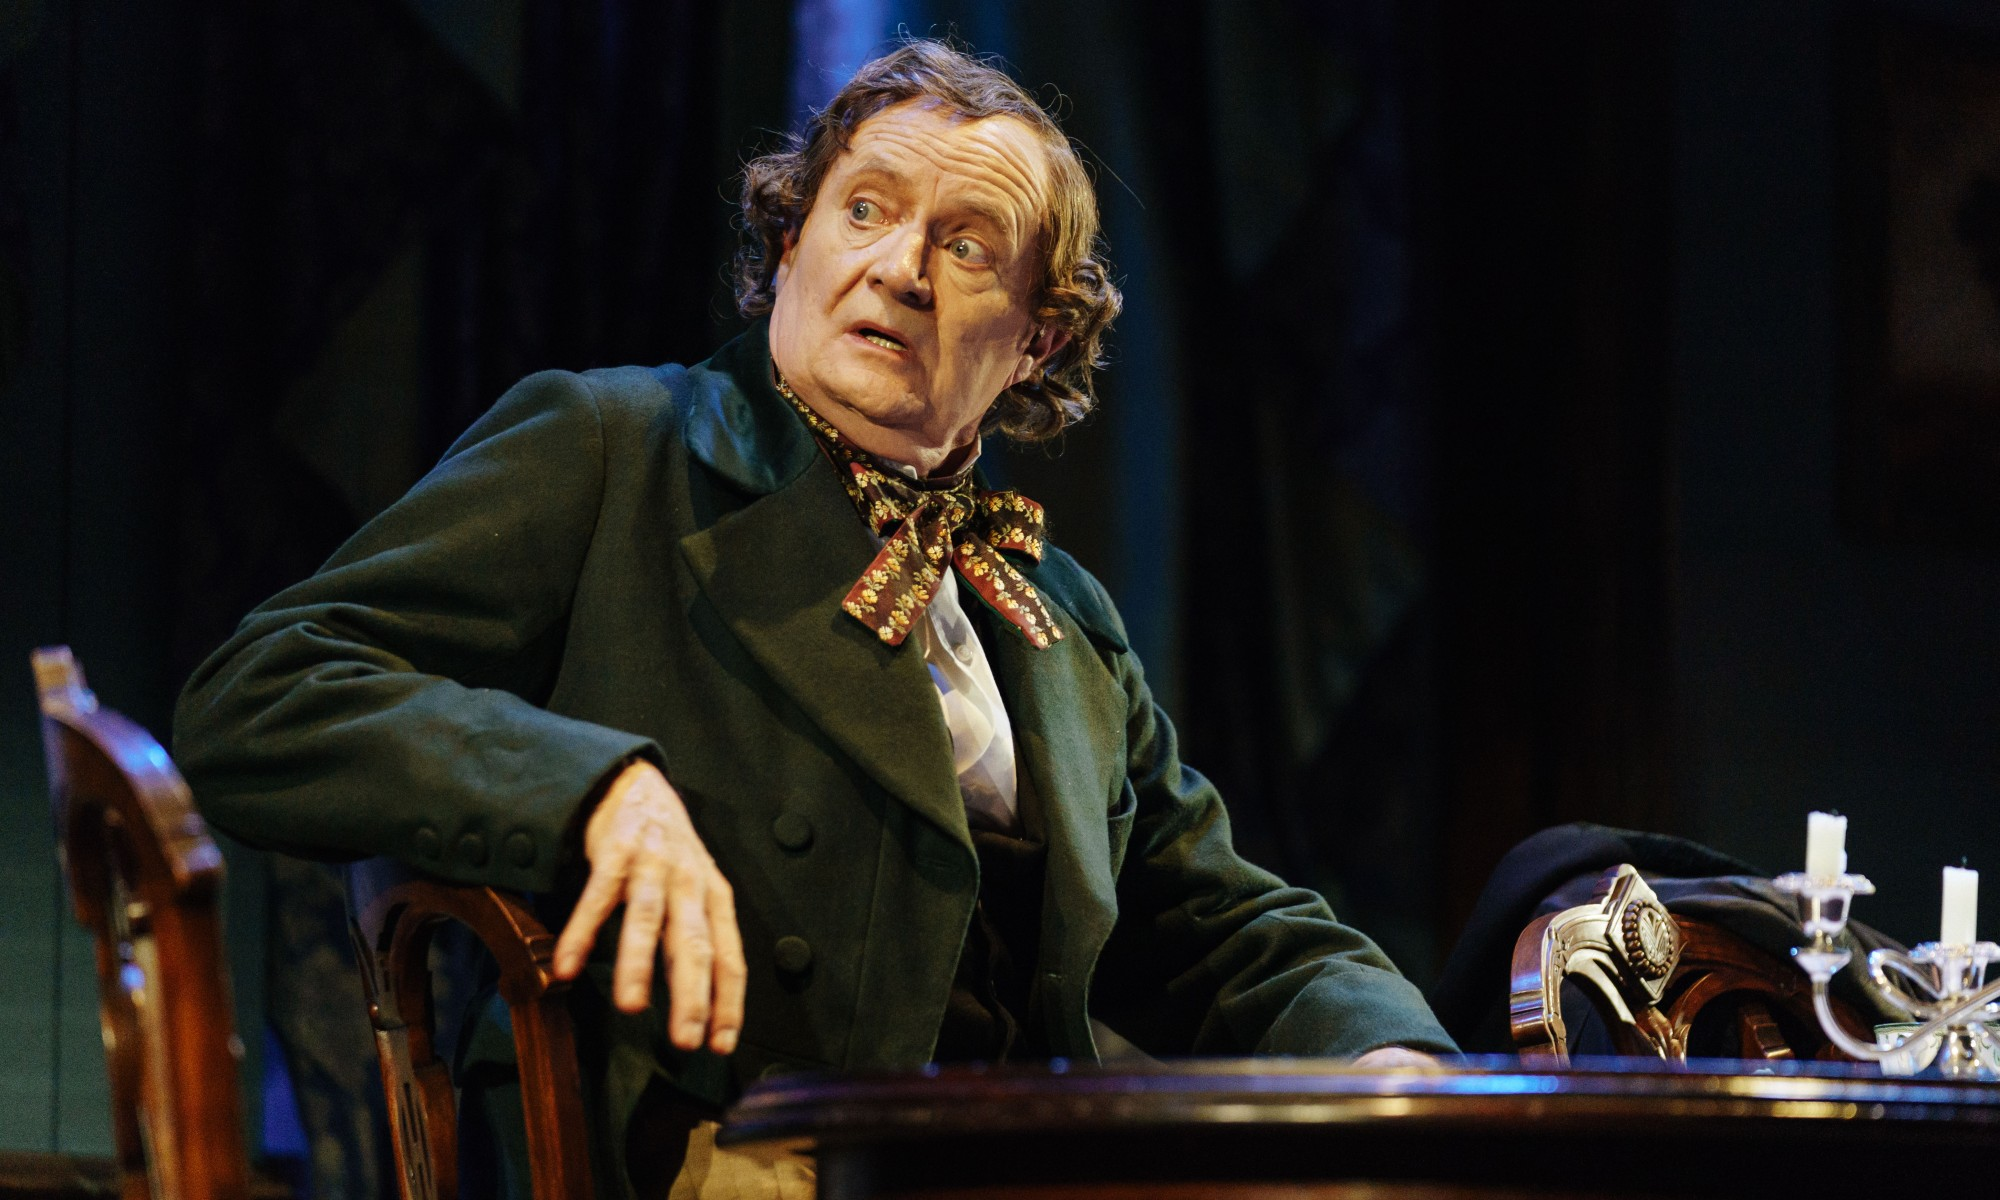 Jim Broadbent as Hans Christian Andersen, in a green coat sitting at a wooden table.